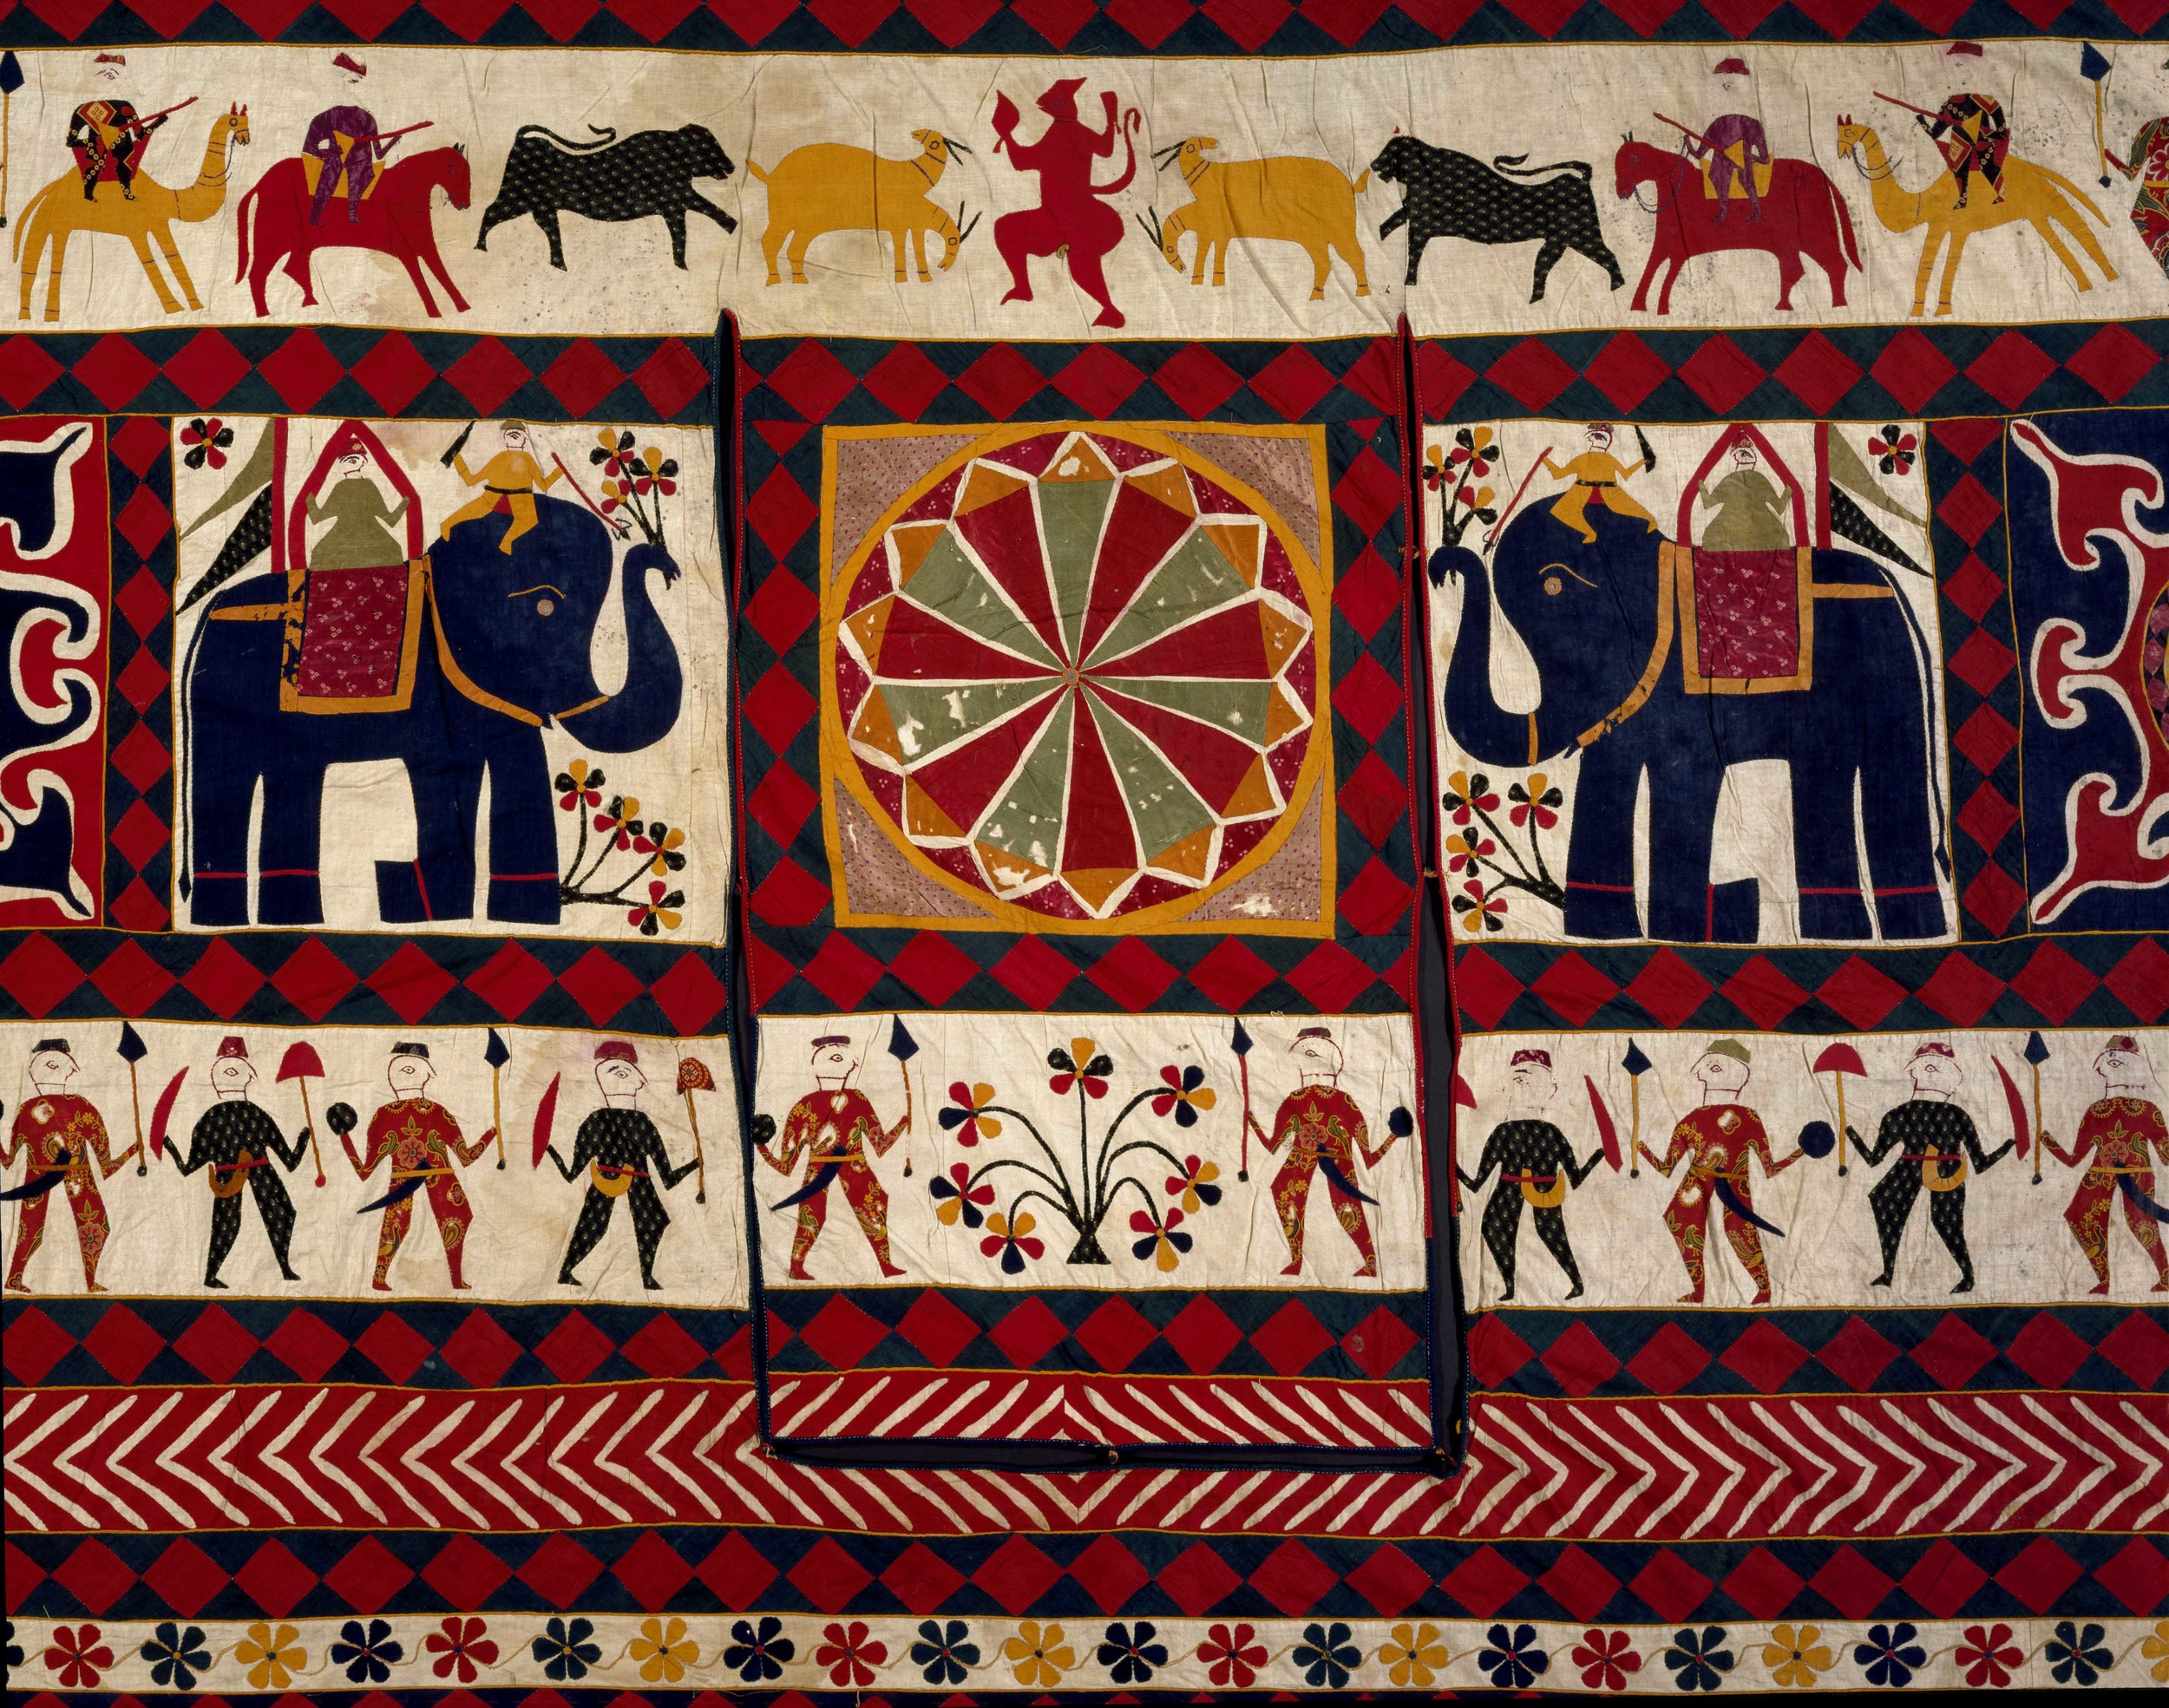 03._Wall_hanging_detail_cotton_appliqué_Gujarat_20th_century__Victoria_and_Albert_Museum_London